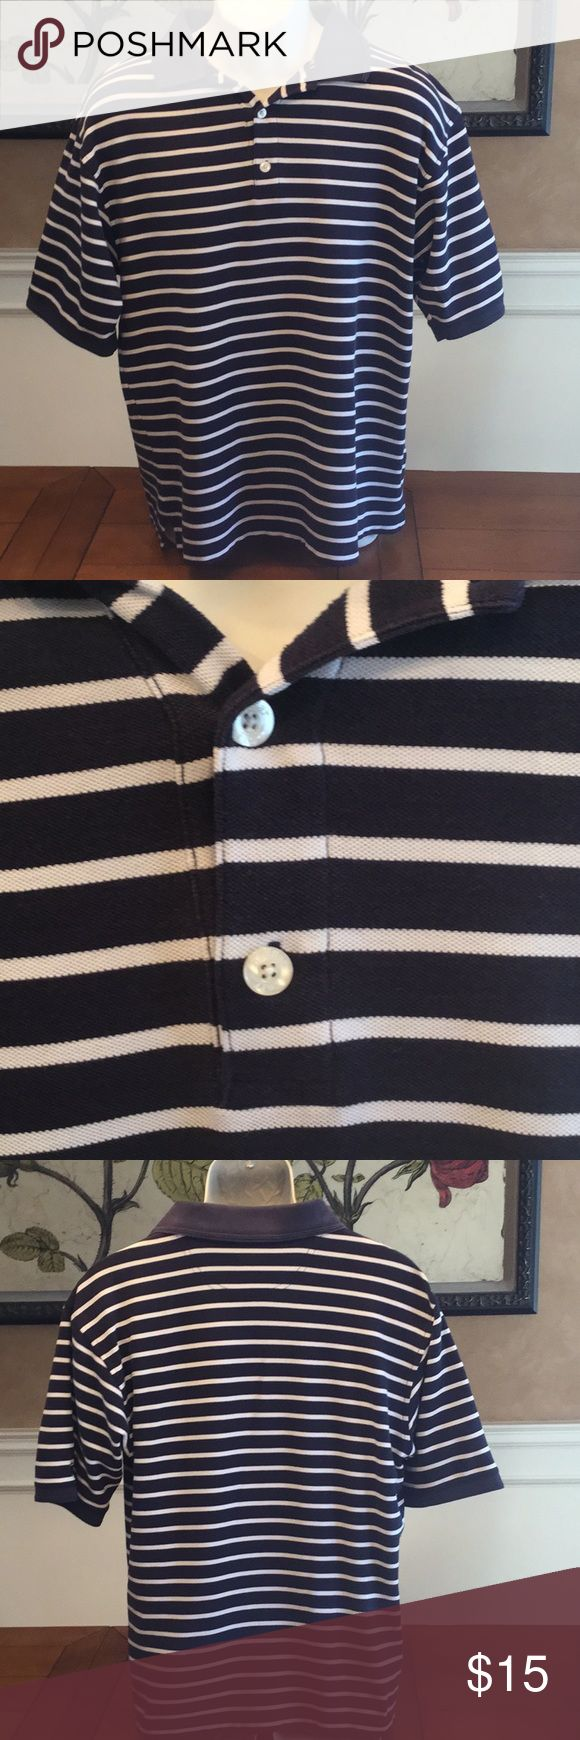 """MENS HAGGAR BLUE & WHITE STRIPED GOLF POLO SHIRT Excellent Used Condition 65% cotton 35% polyester  Perfect shirt for playing golf, dress down at work or dinner out!  Banded Collar  3 buttons on chest 2"""" side slit 22"""" armpit to armpit lying flat  26"""" shoulder to hem Haggar Shirts Polos"""